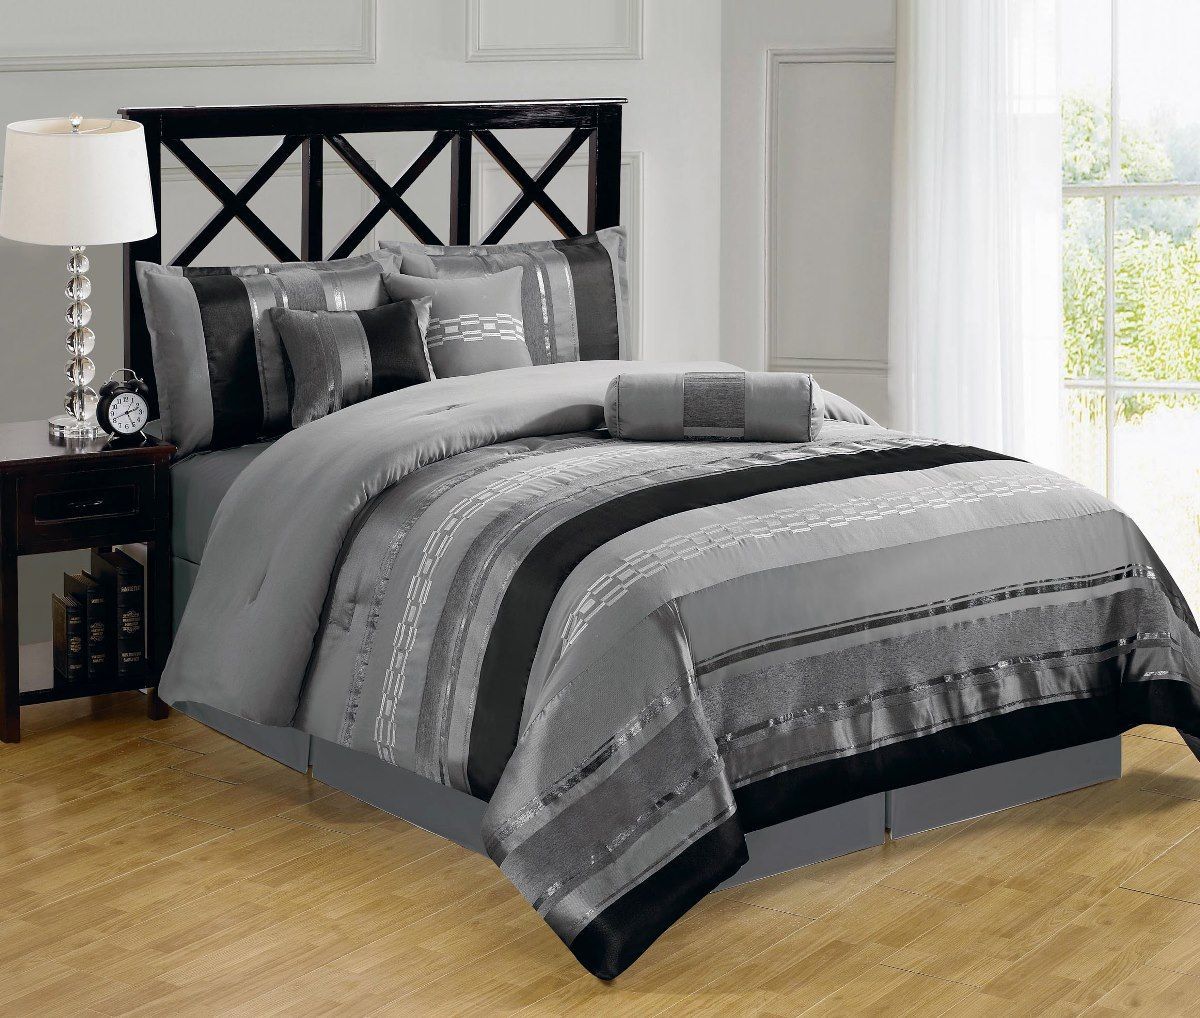 set madison park comforter matching and laurel sets pin curtains at bedding grey queen